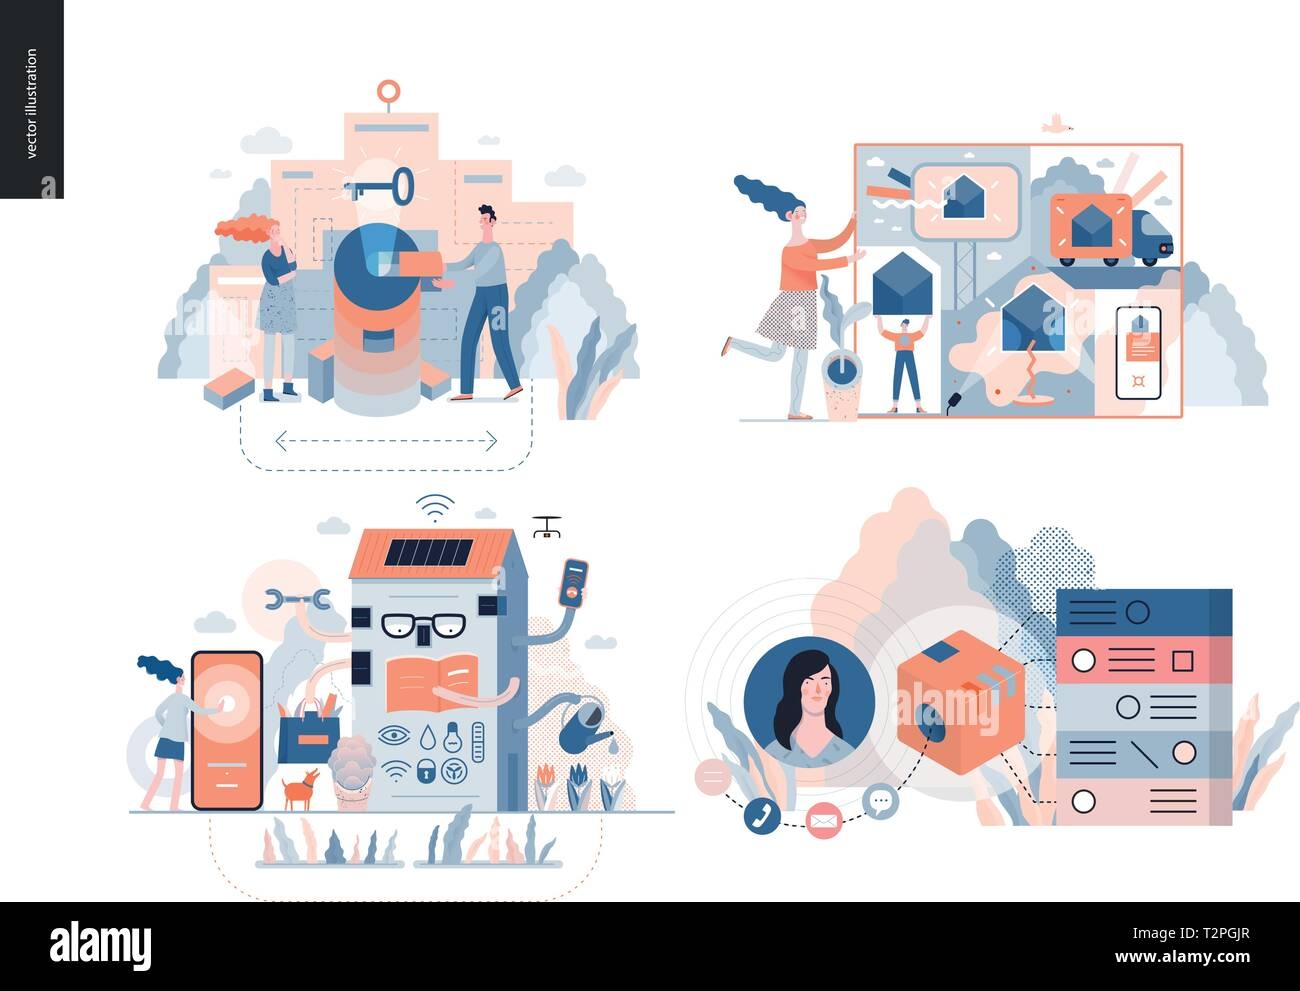 Technology 3 set - modern flat vector concept digital illustration- Marketing Promotion, Solution, Intelligent building, CRM Customer Relationship Man - Stock Image